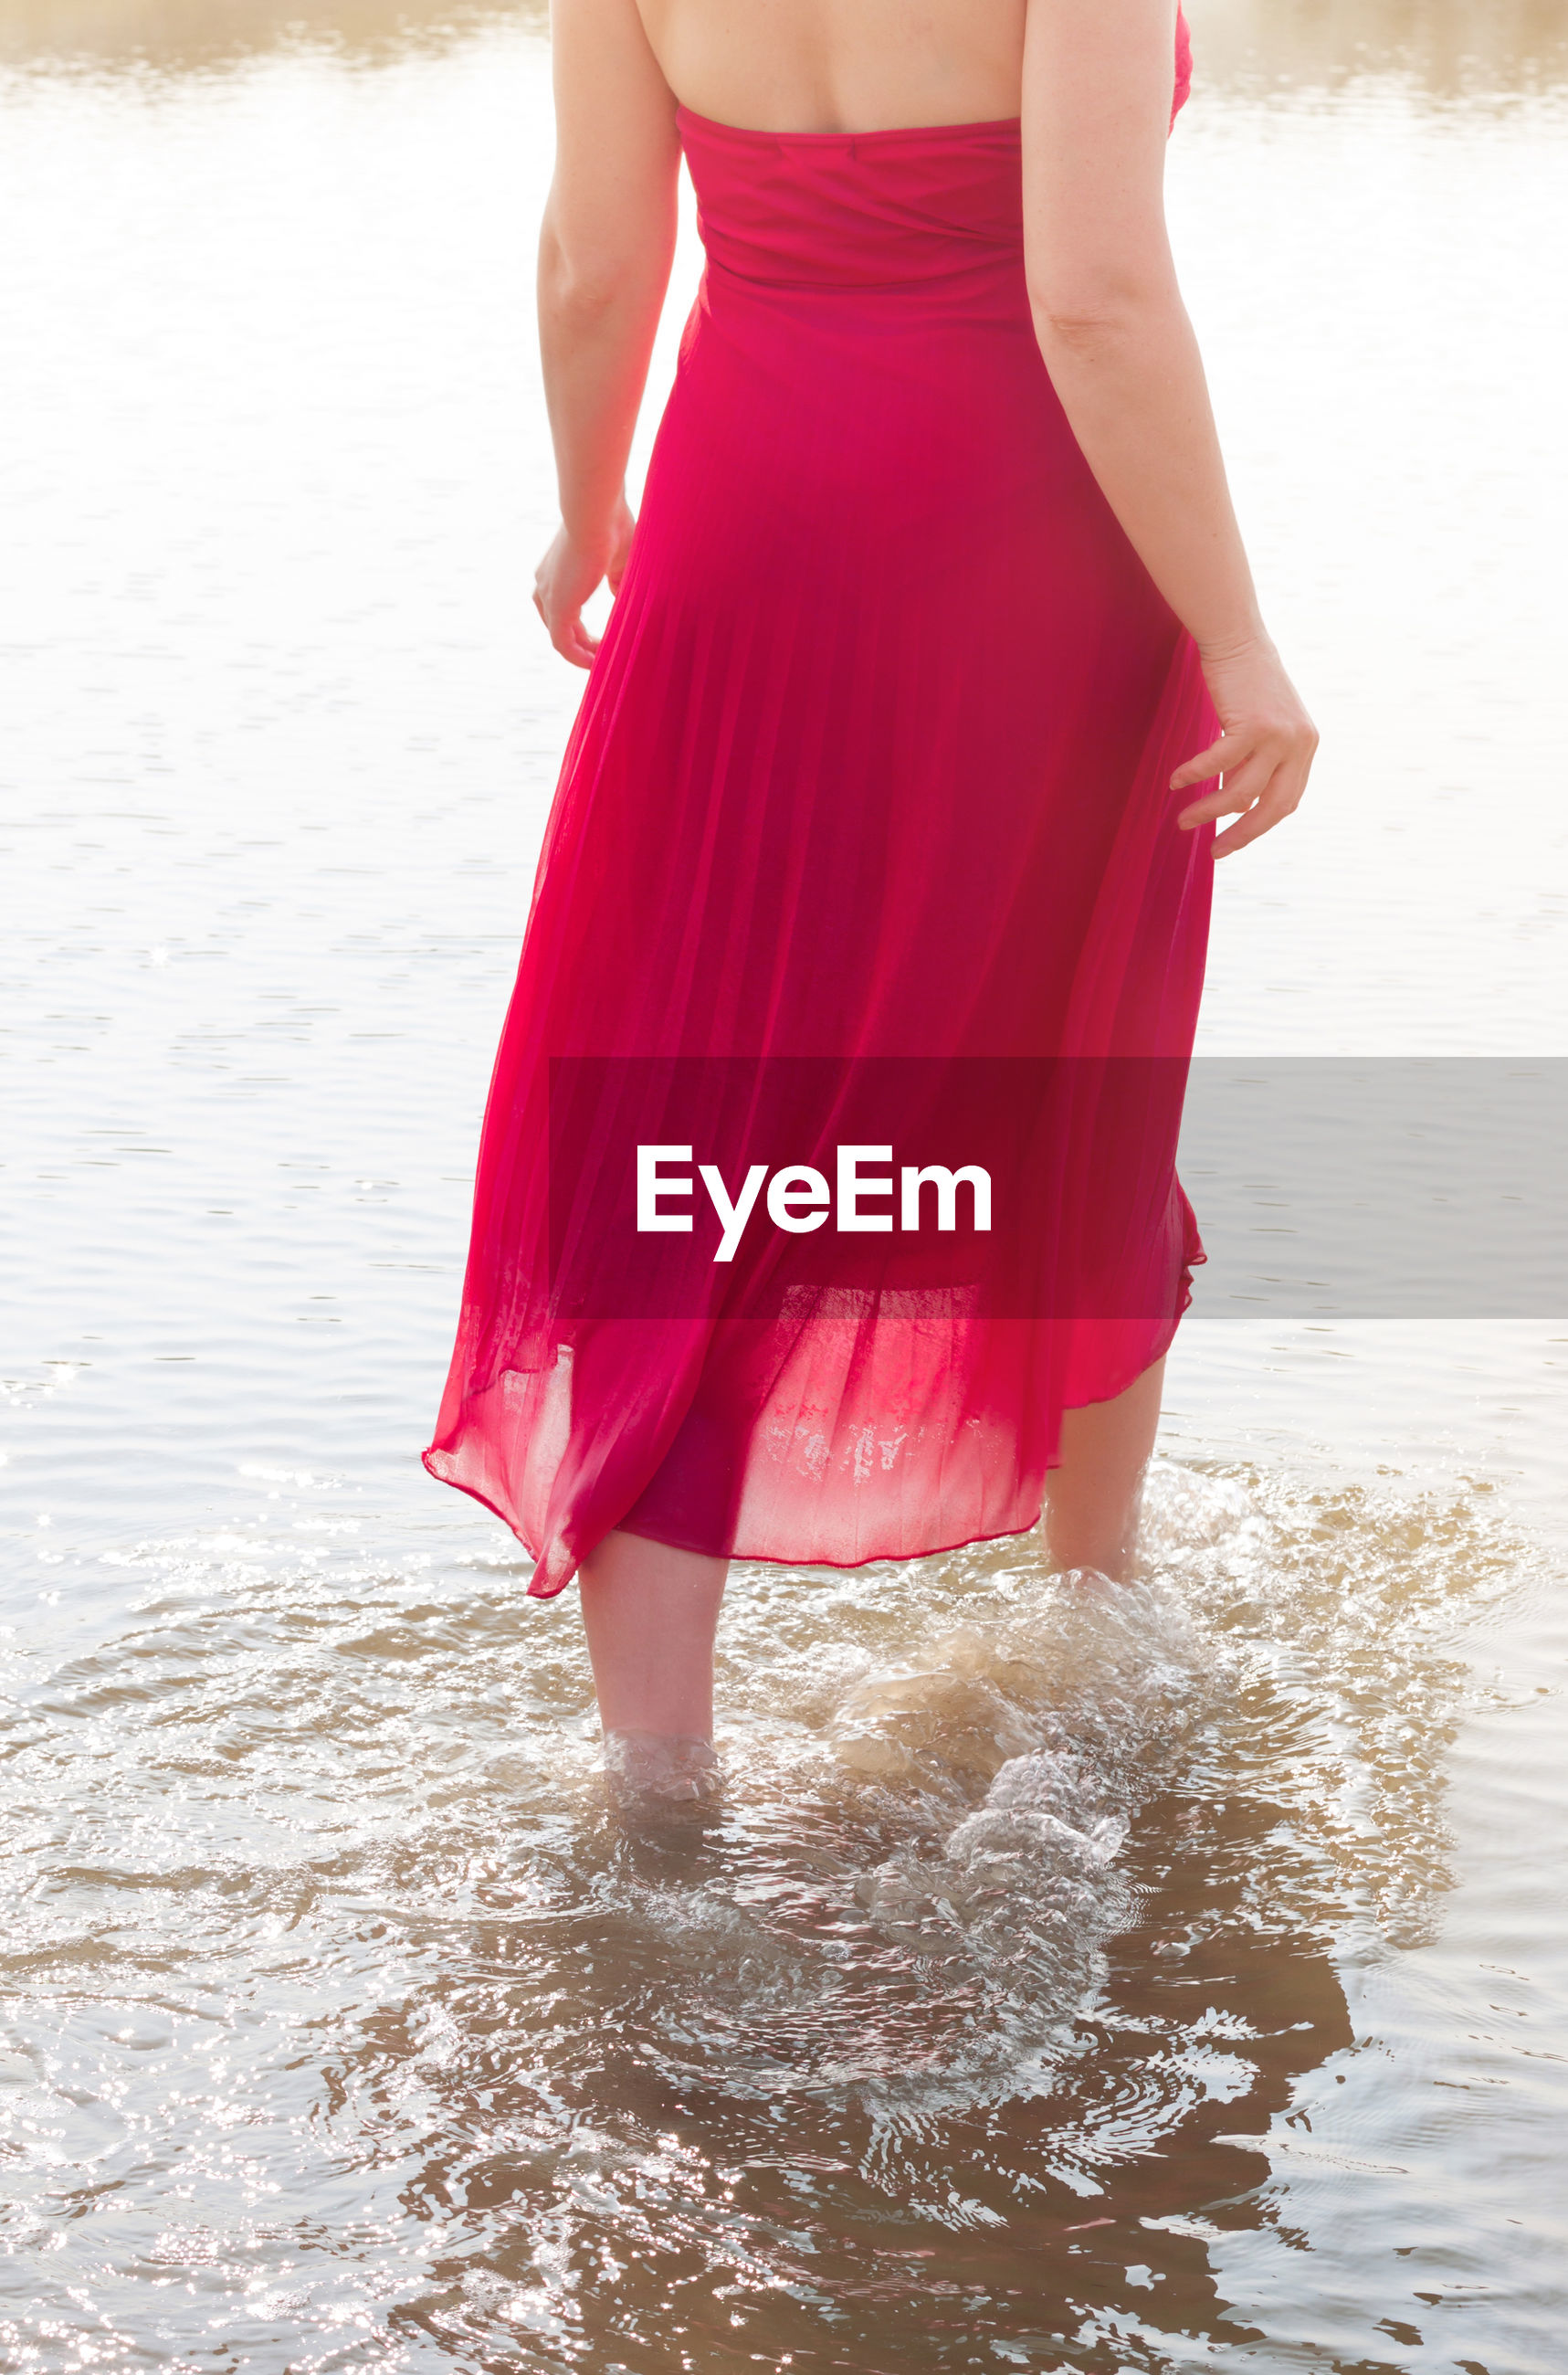 Midsection of woman in red dress wading in sea